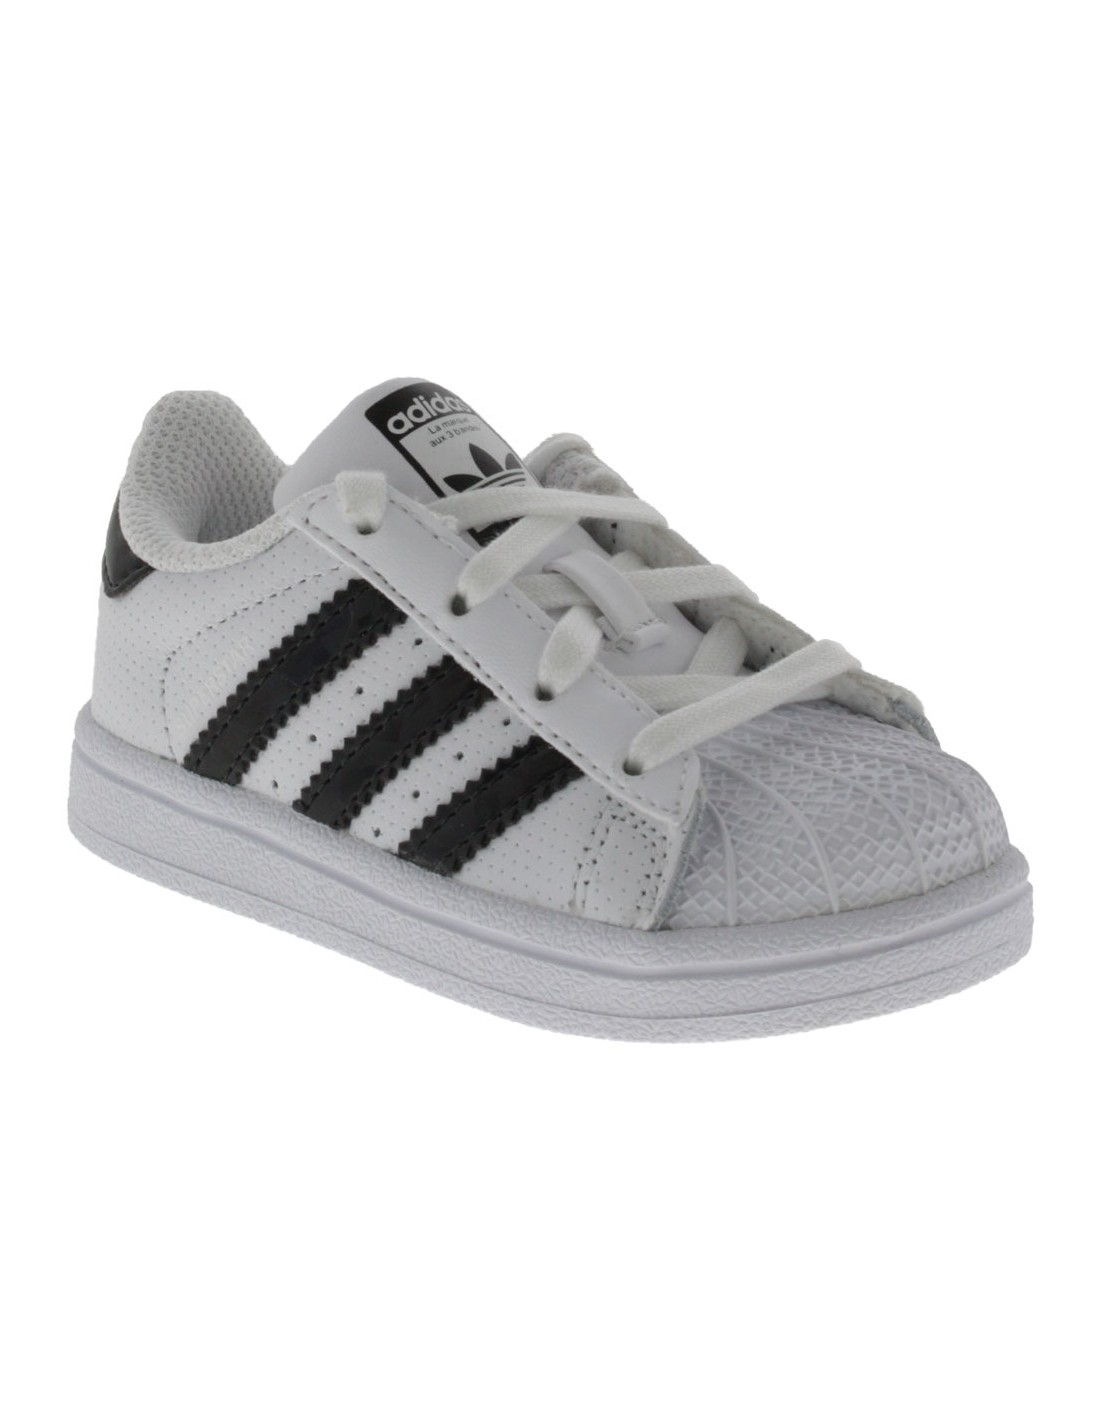 adidas superstar bimbo 20